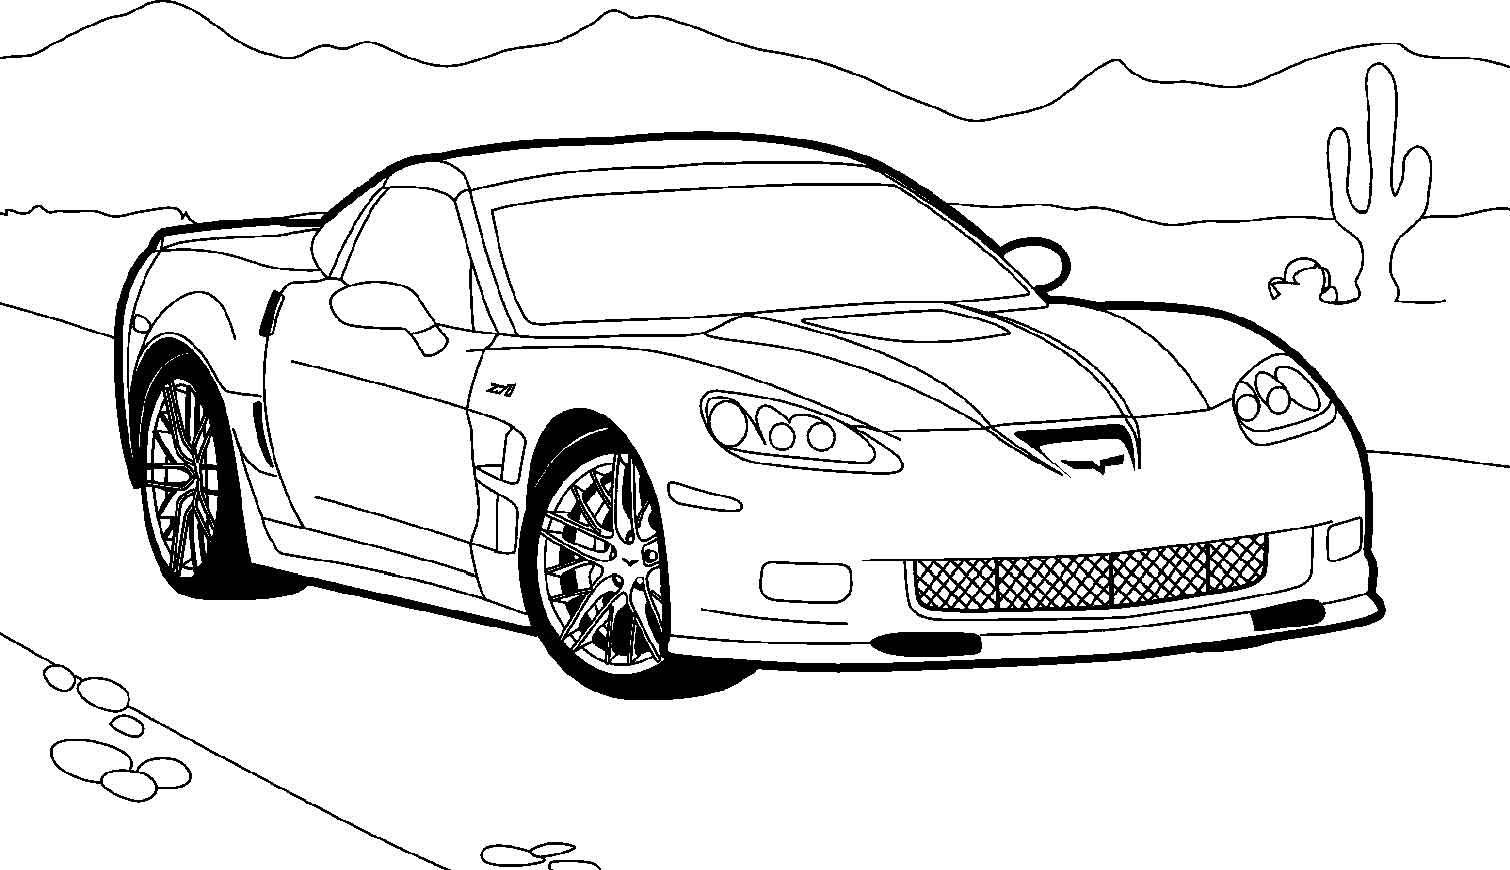 Black And White Car Clipart & Black And White Car Clip Art Images.